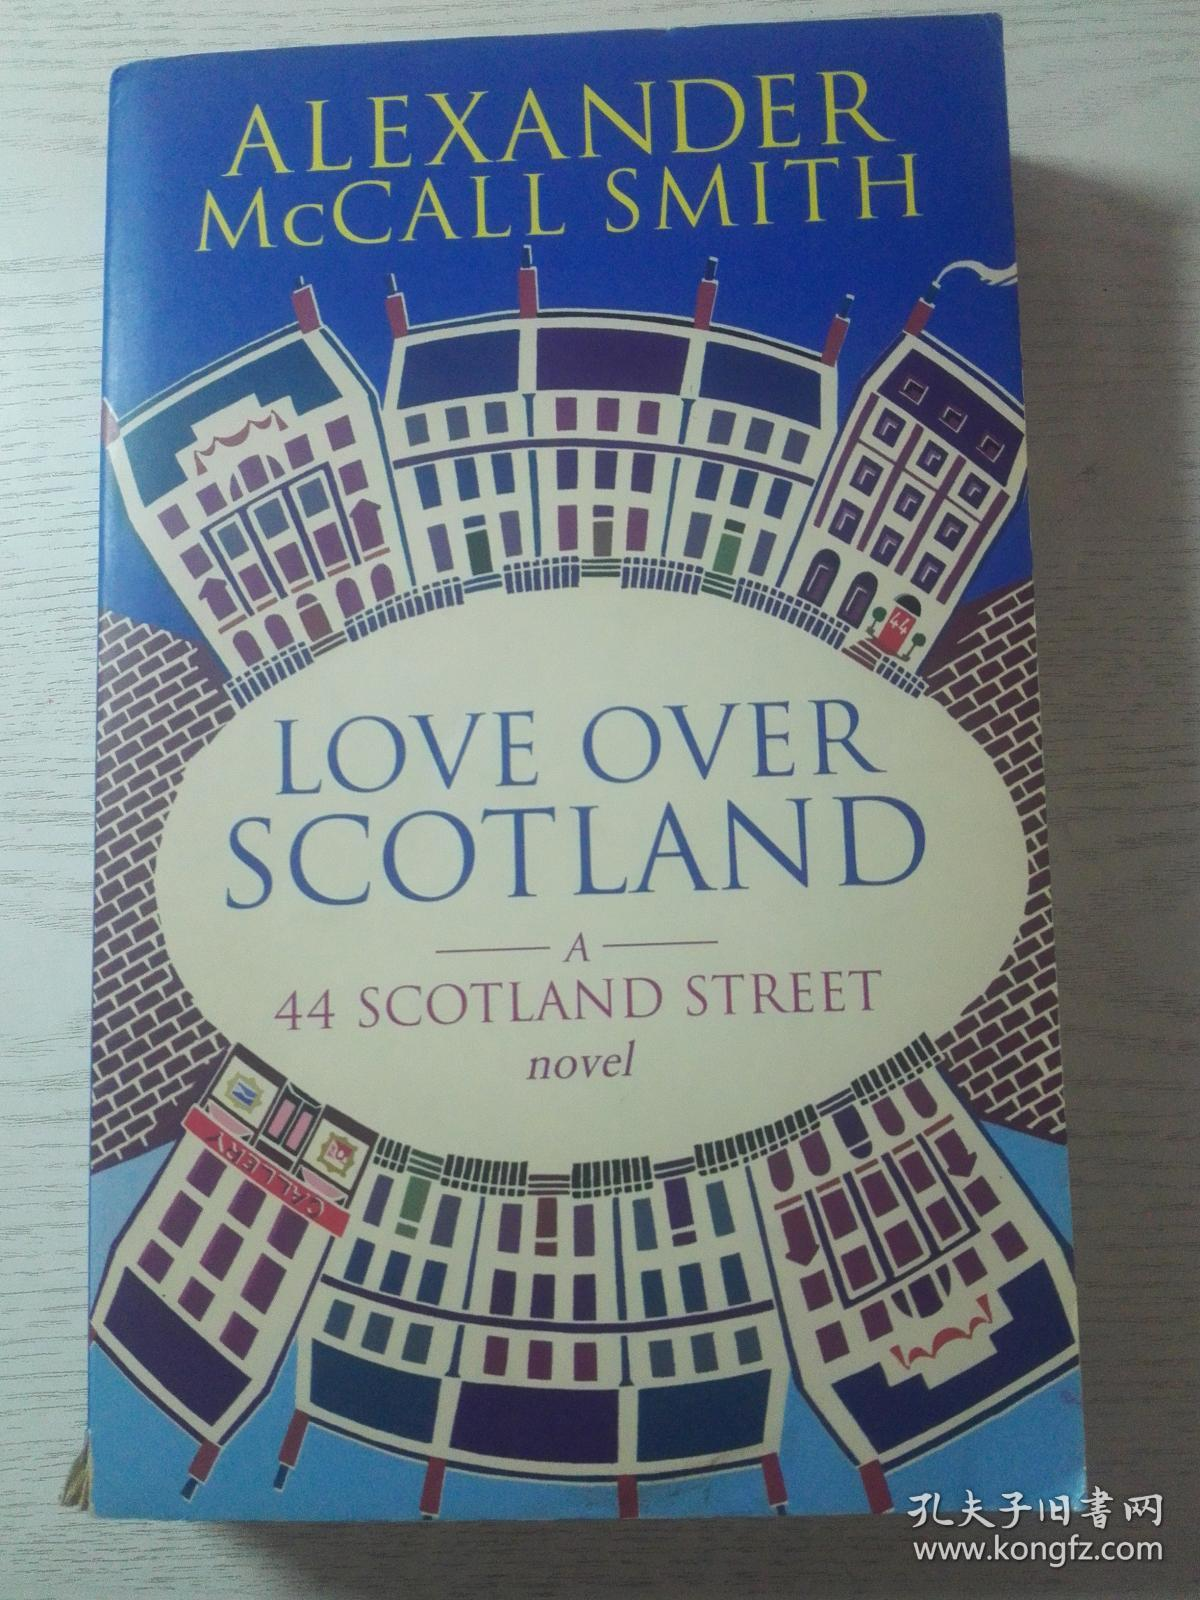 Alexander Mccall Smith : Love Over Scotland-44 Scotland Street